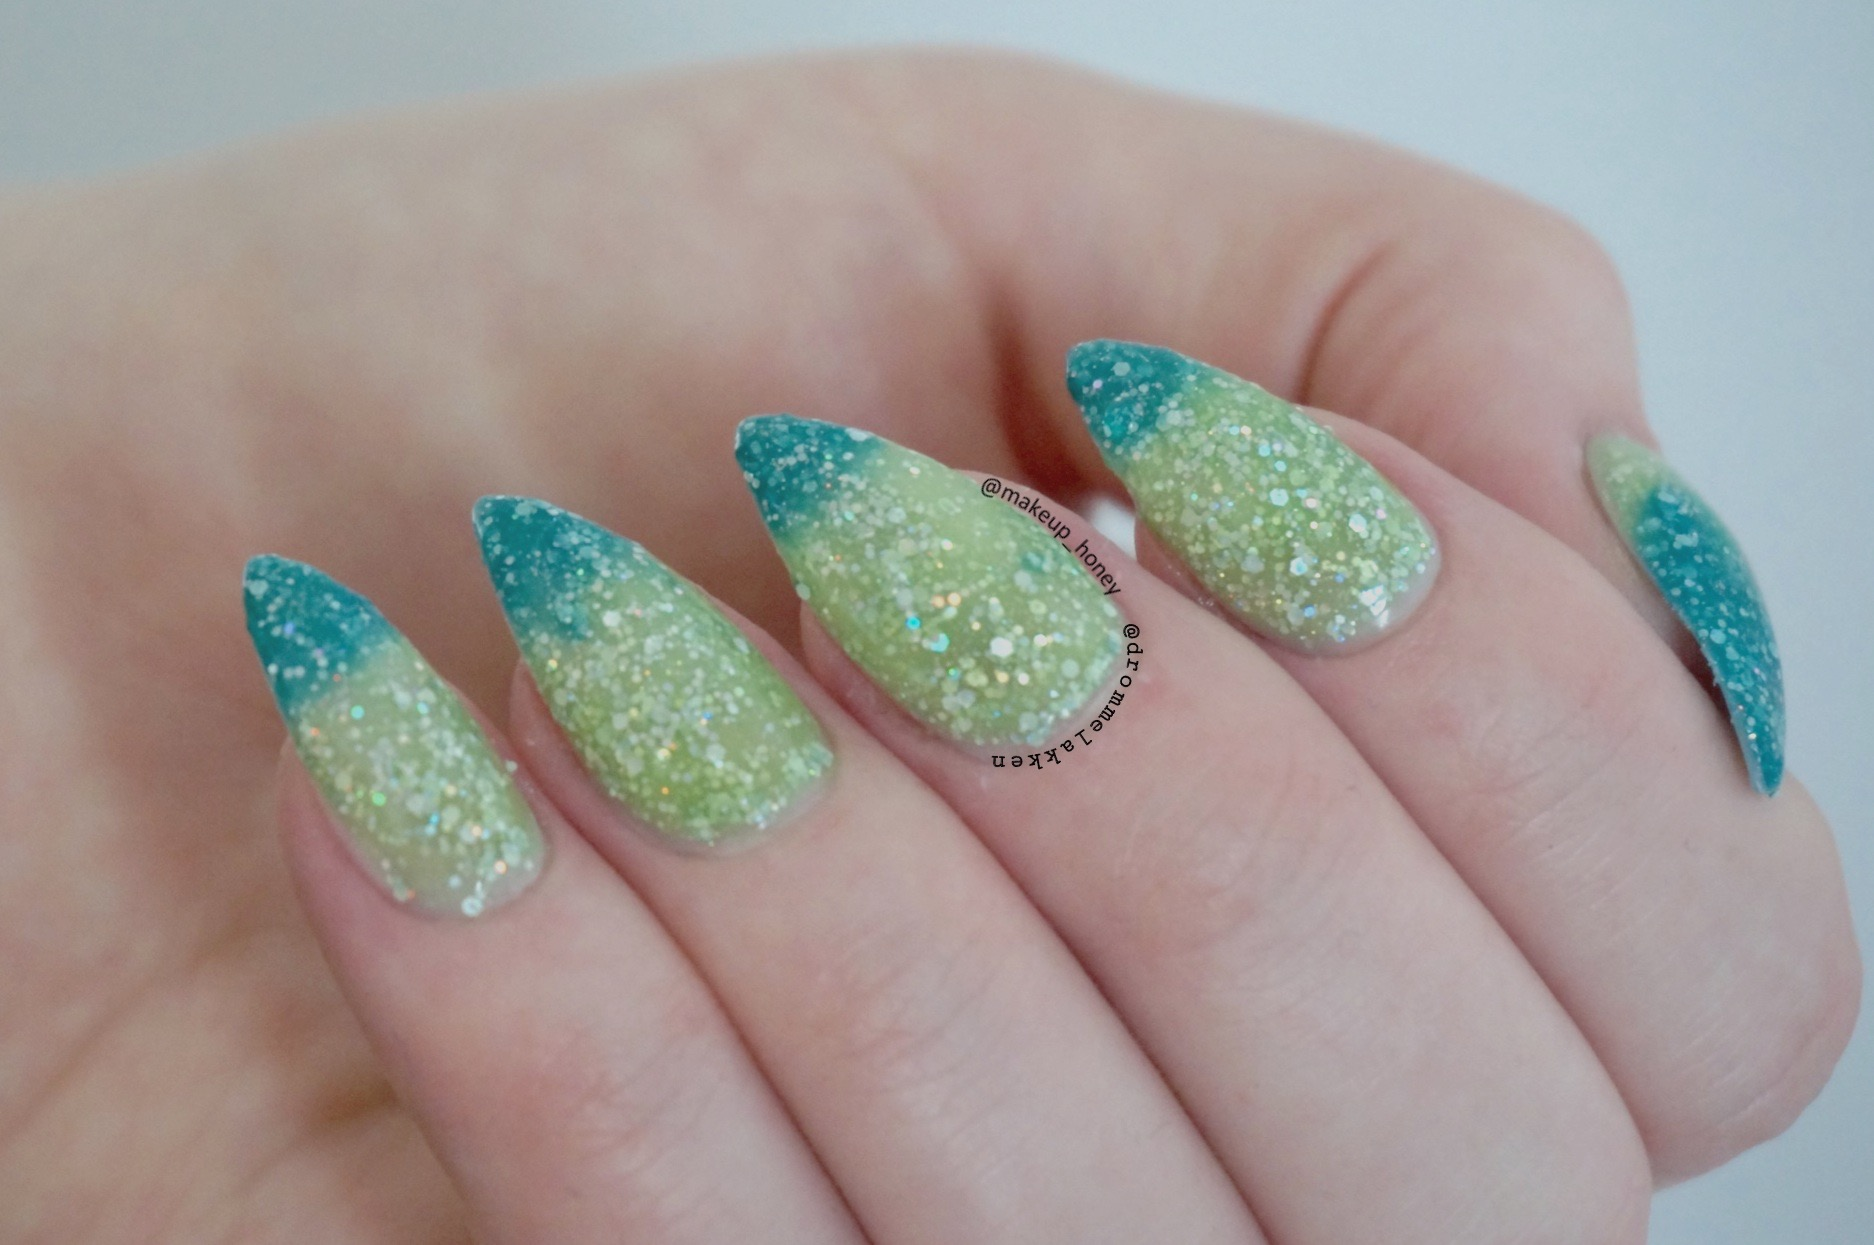 Nail Polish That Changes Color Quickly - Creative Touch